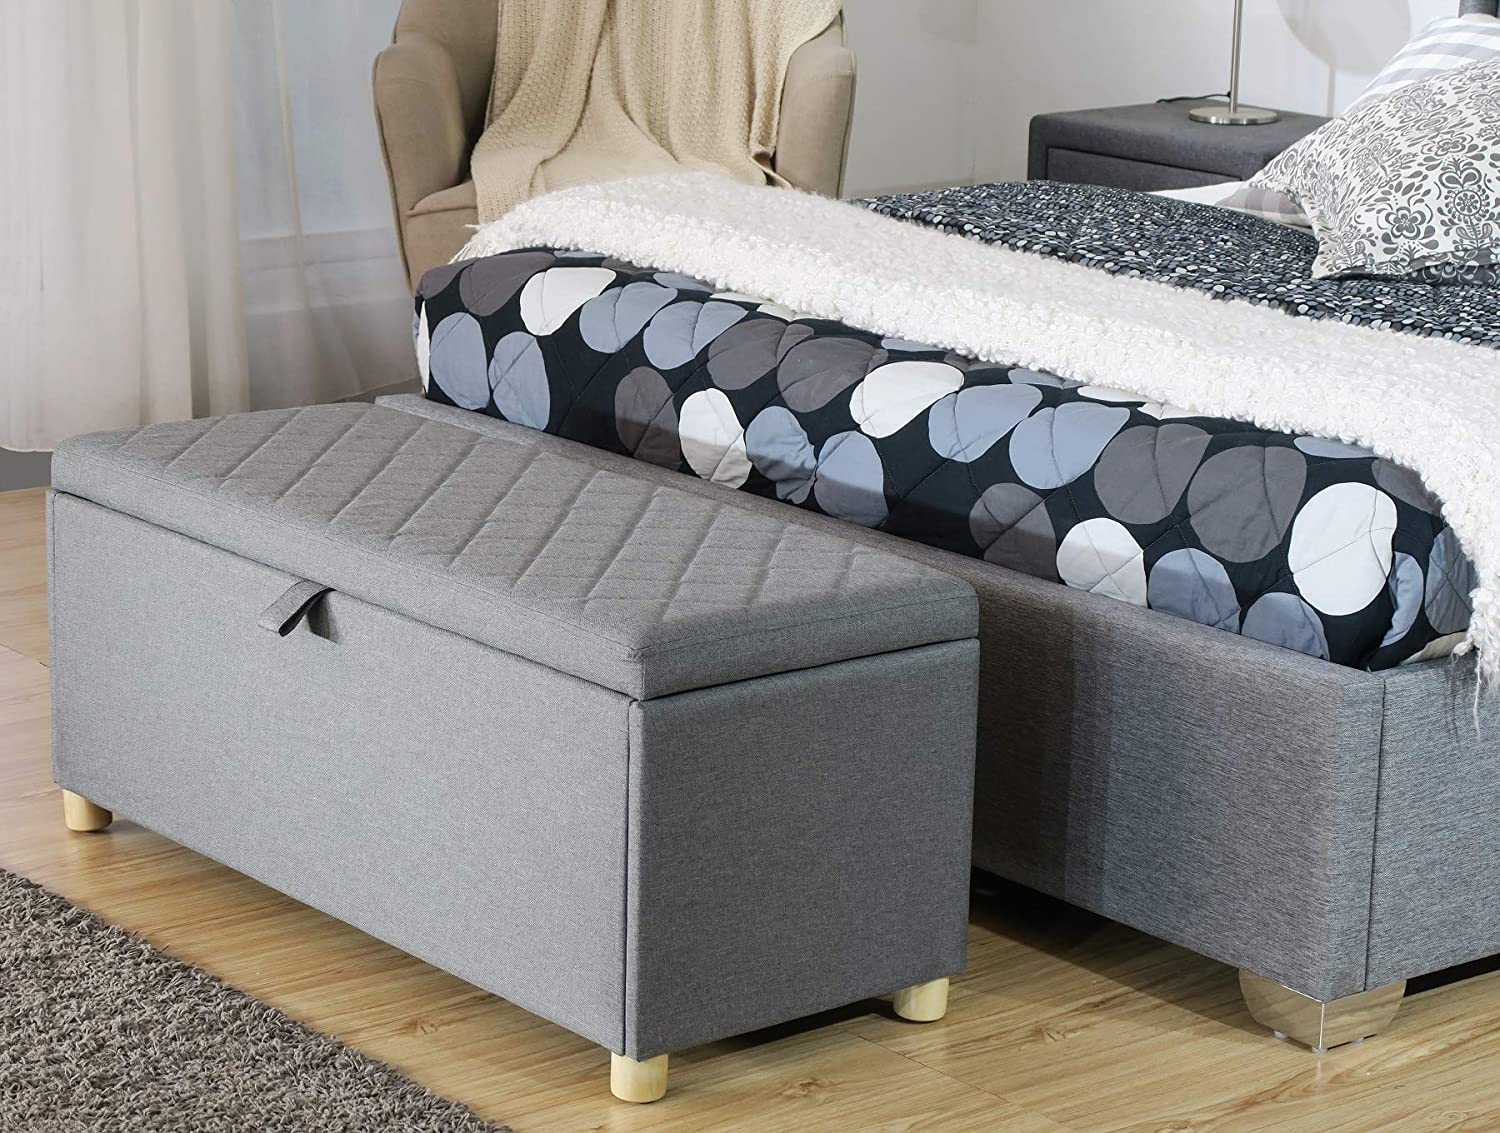 Cool Bfw Large Grey Fabric Ottoman Storage Chest Bedding Box Luxury Quilted Gas Lift Lid W 130Cm D 40Cm H 43Cm Gmtry Best Dining Table And Chair Ideas Images Gmtryco